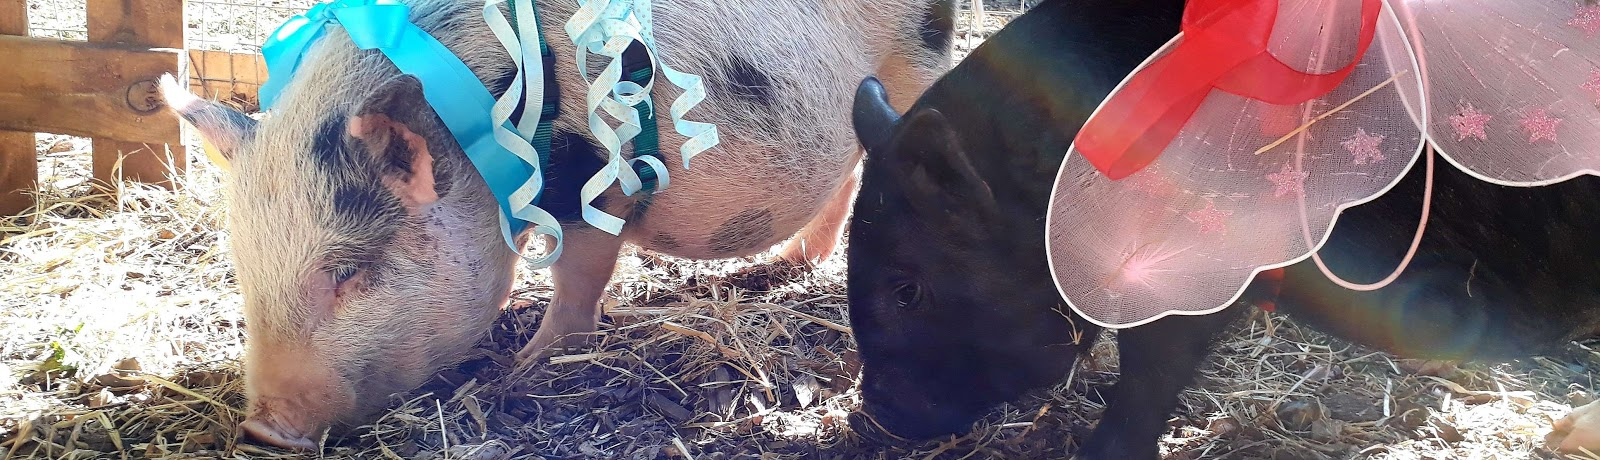 cuddly wedding pigs